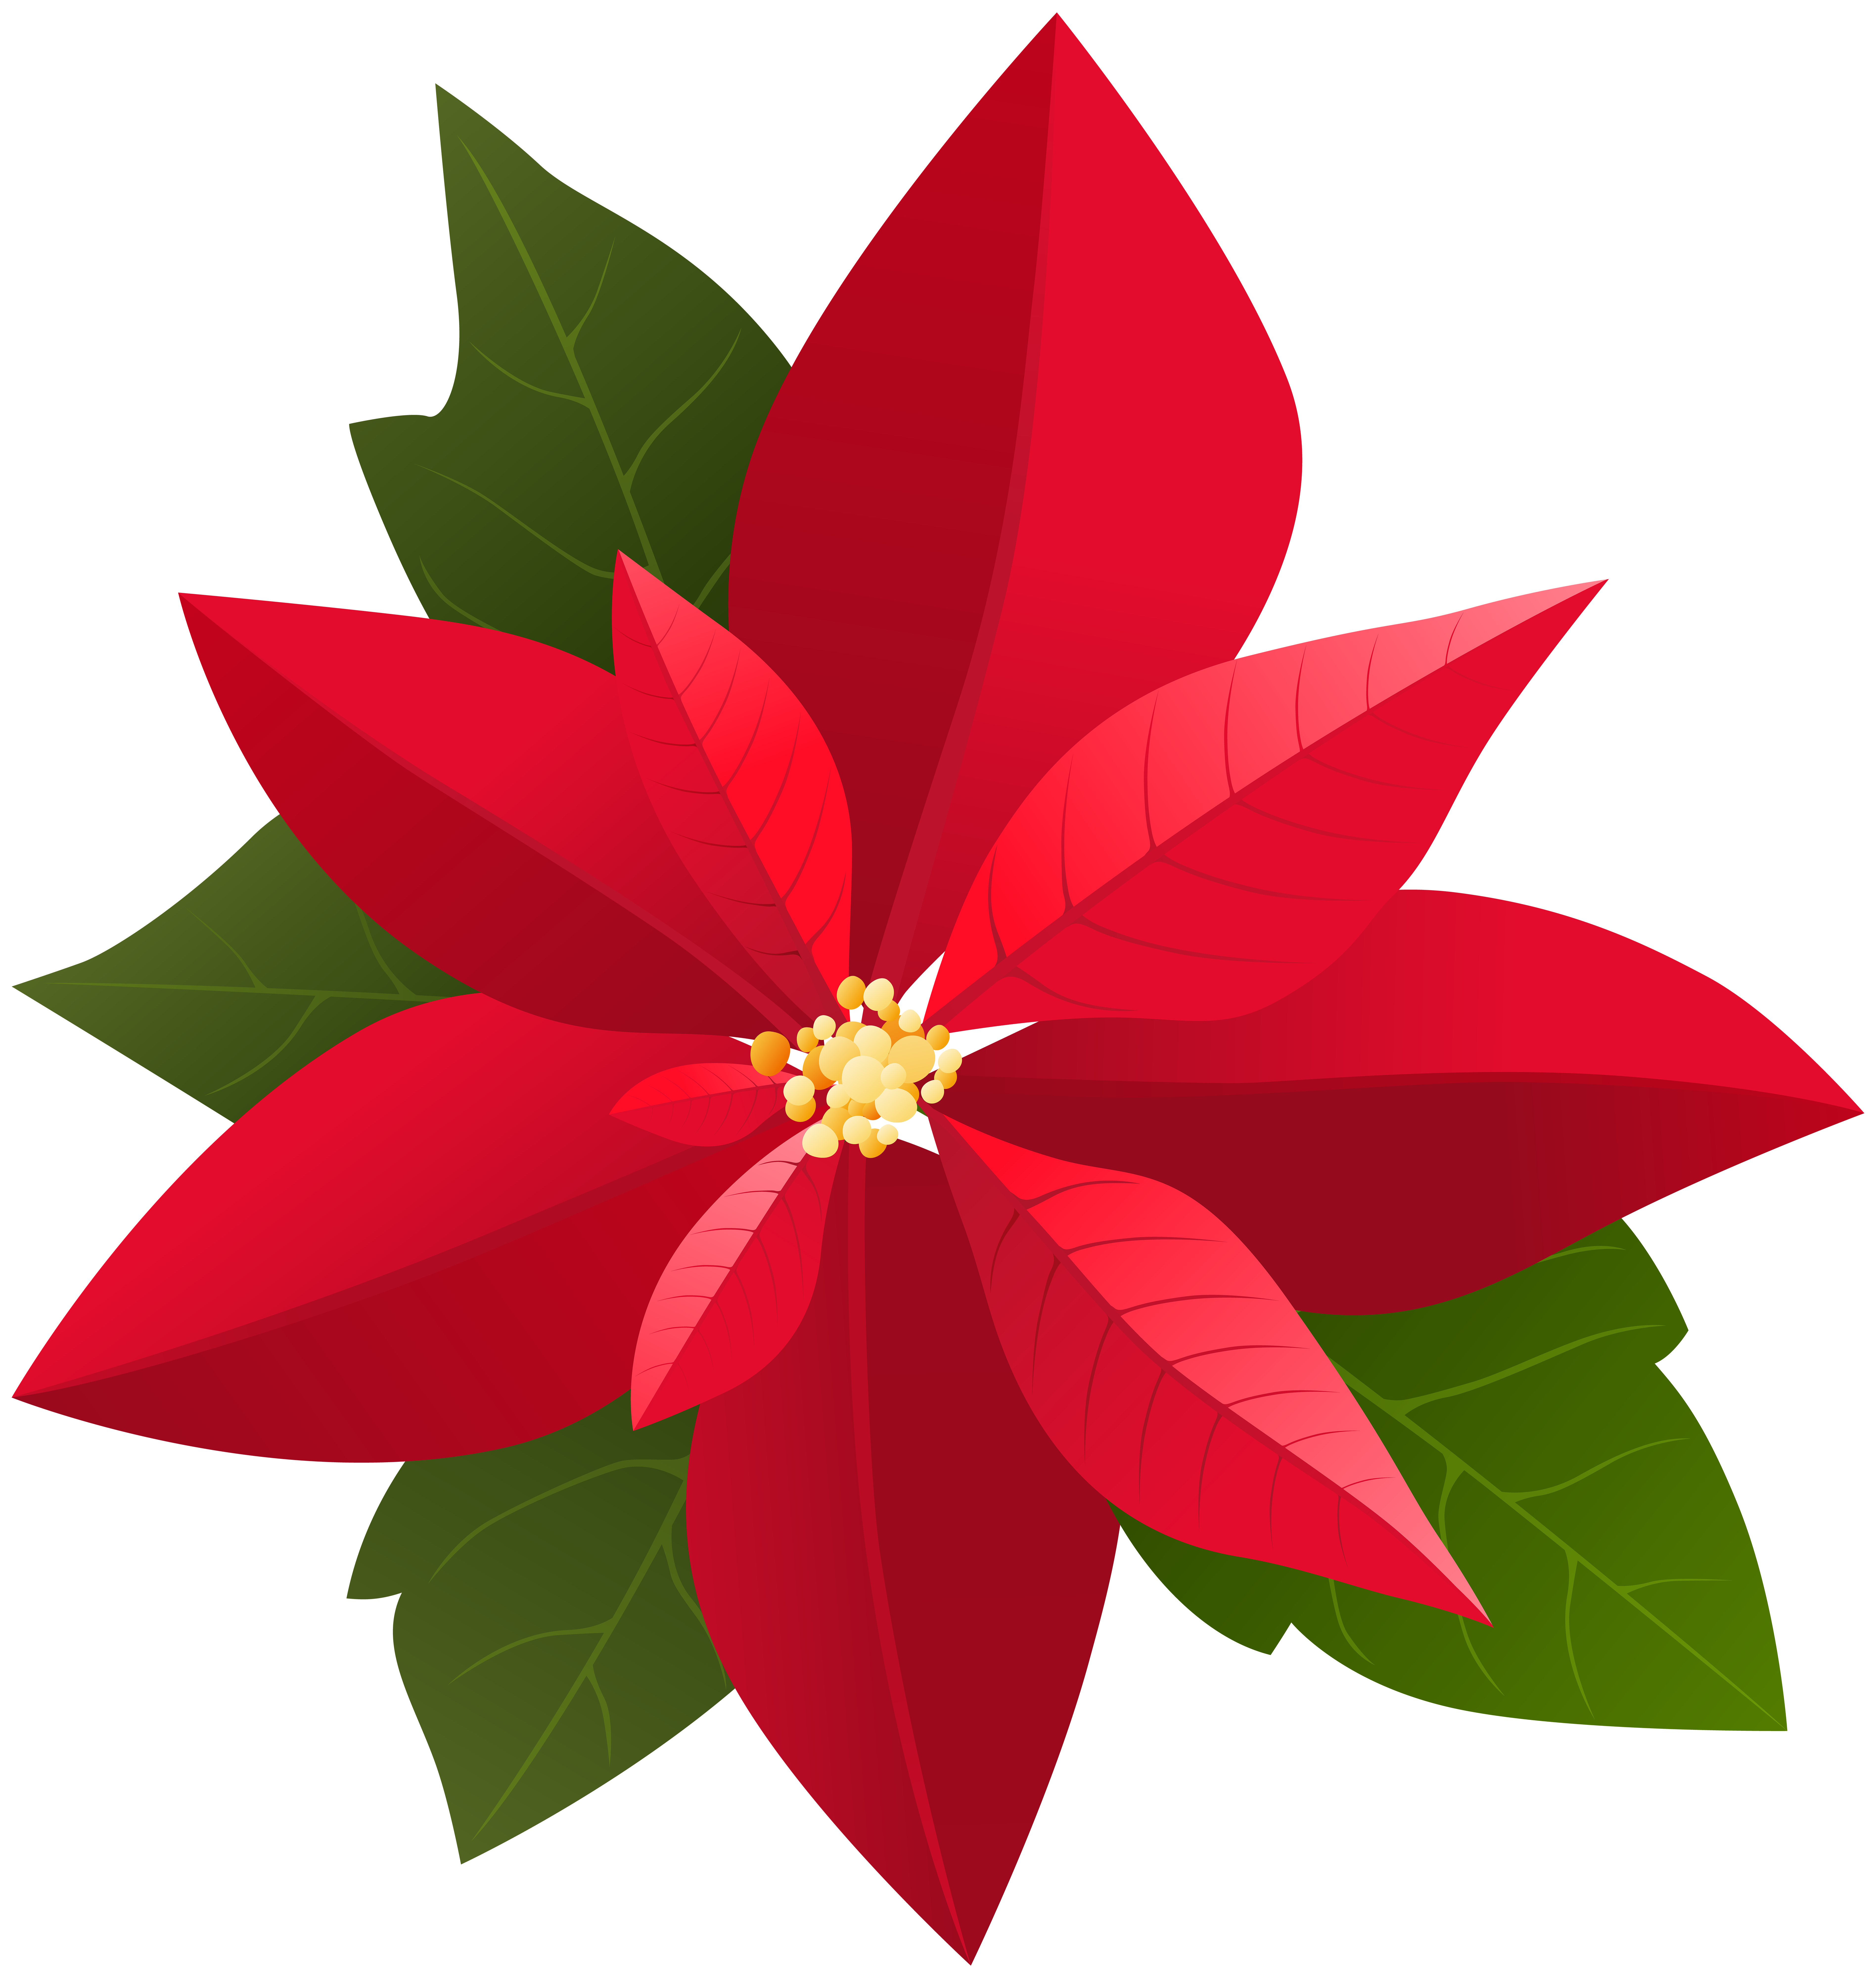 chrysler pacifica hybrid. Poinsettias clipart transparent background